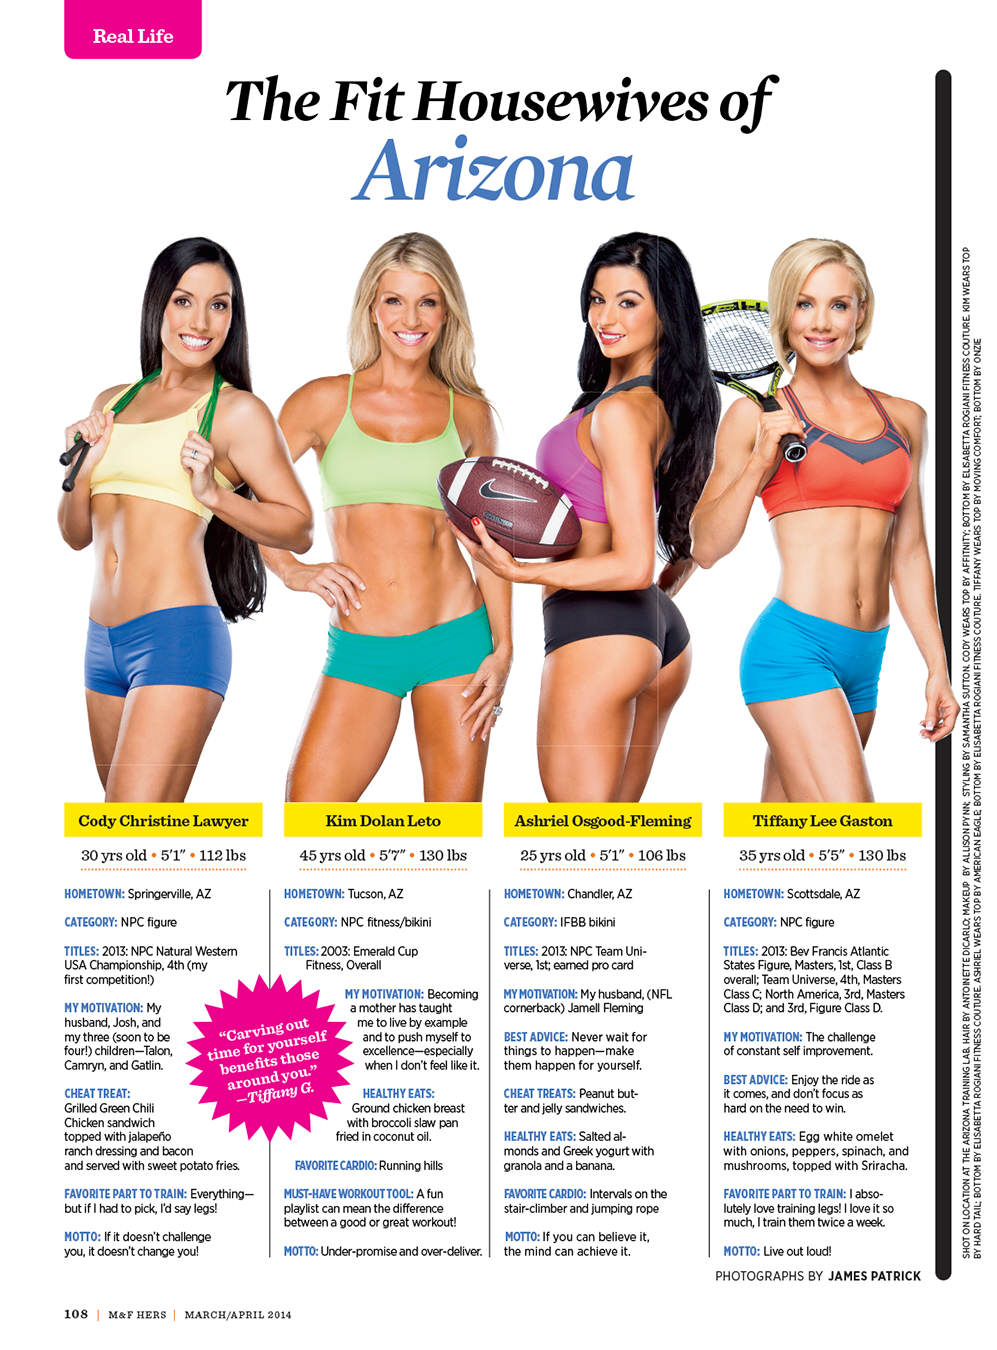 Behind the Scenes: The Fit Housewives of Arizona Photo Shoot Muscle and Fitness Hers